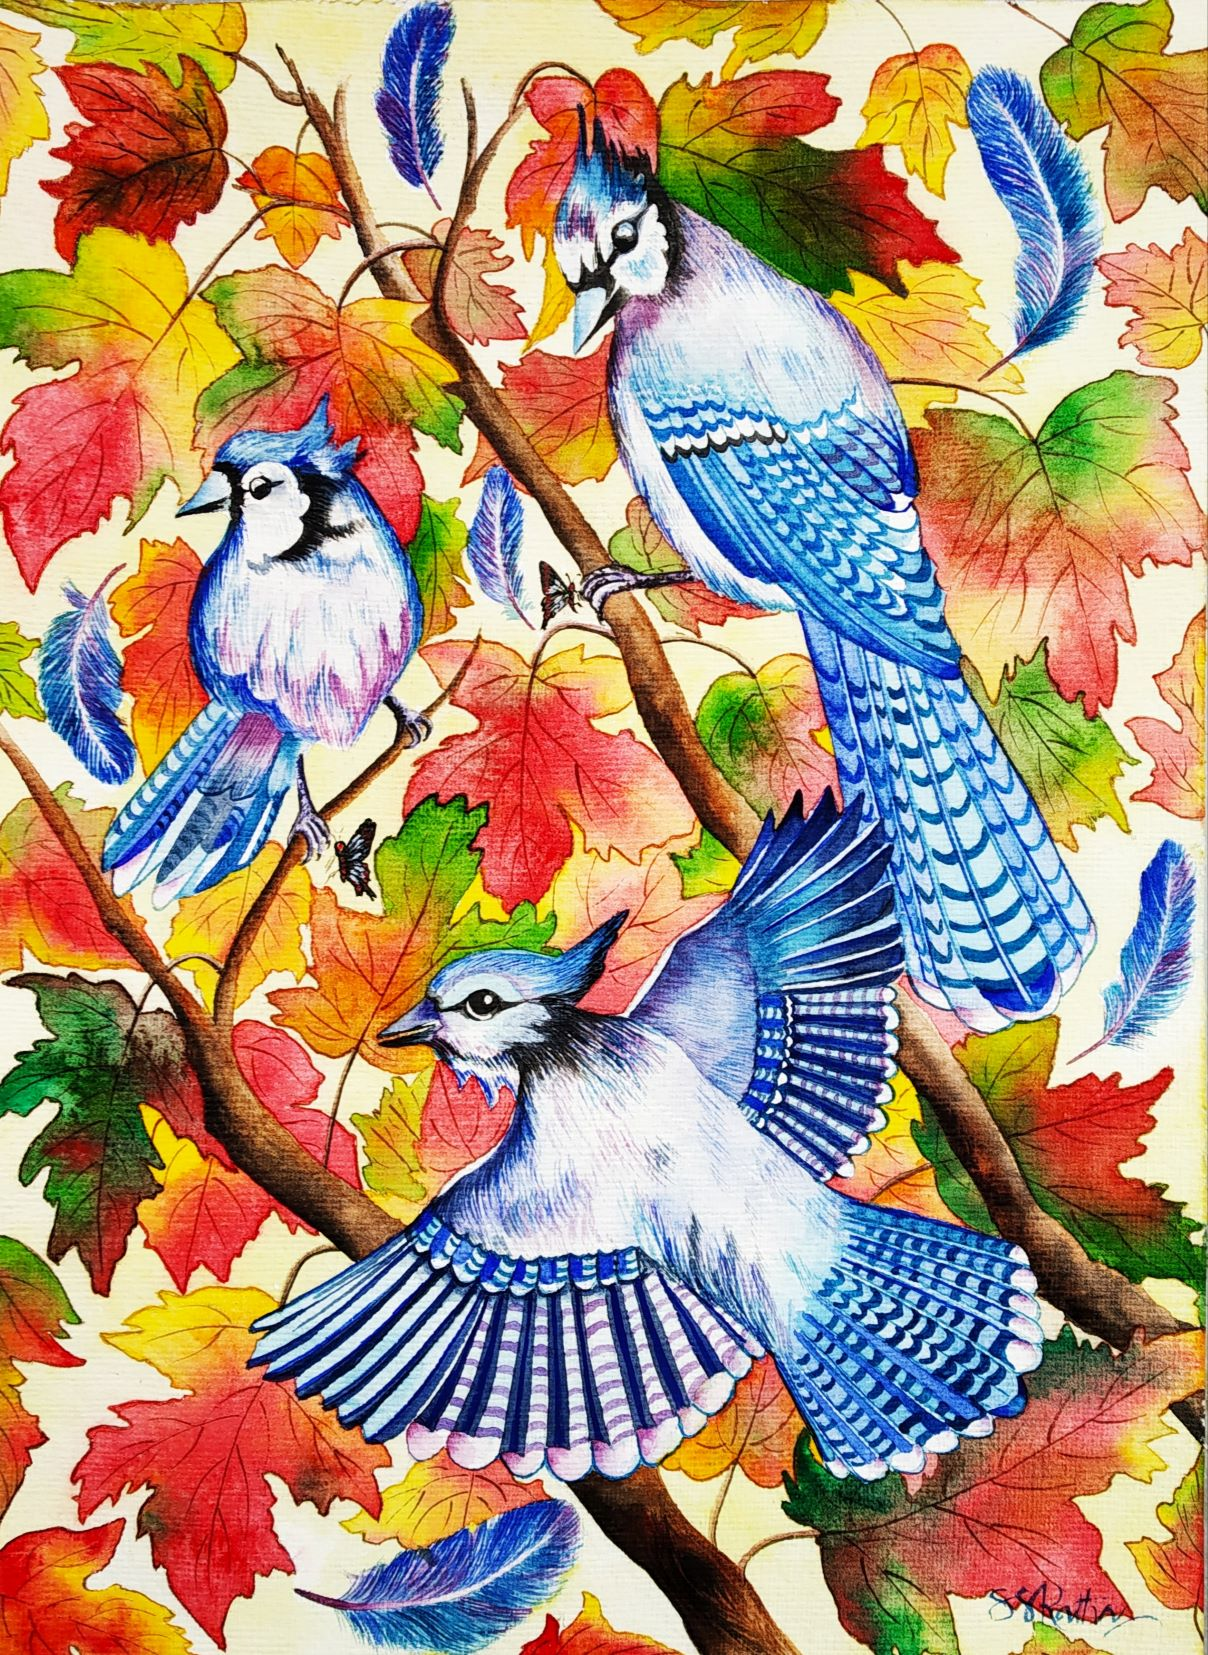 1601465363_autumn-beauty.jpg